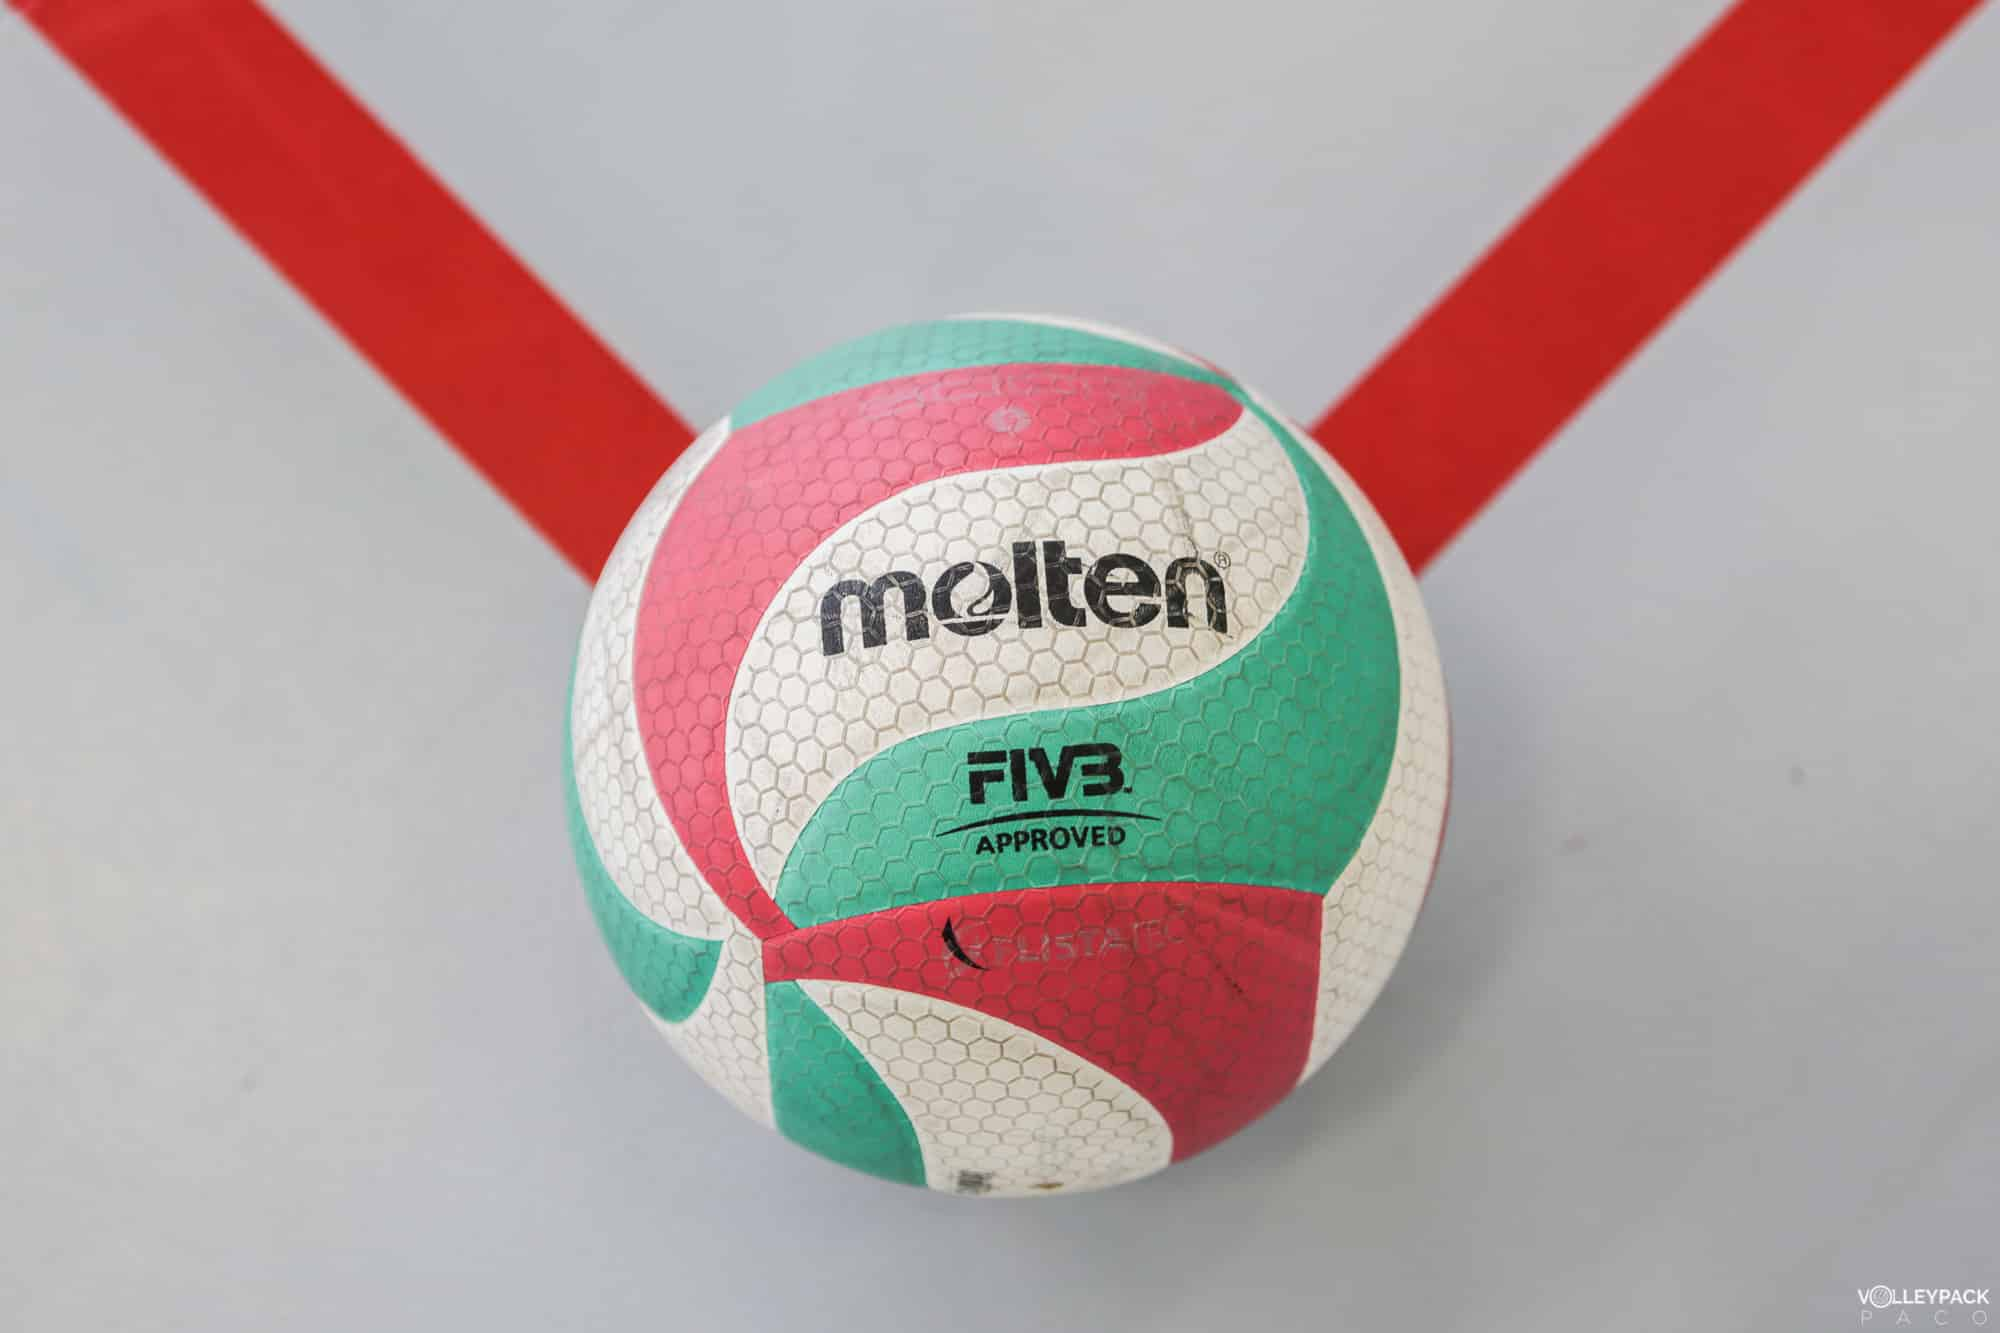 ballon-volley-ball-molten-V5M5000-volleypack-10